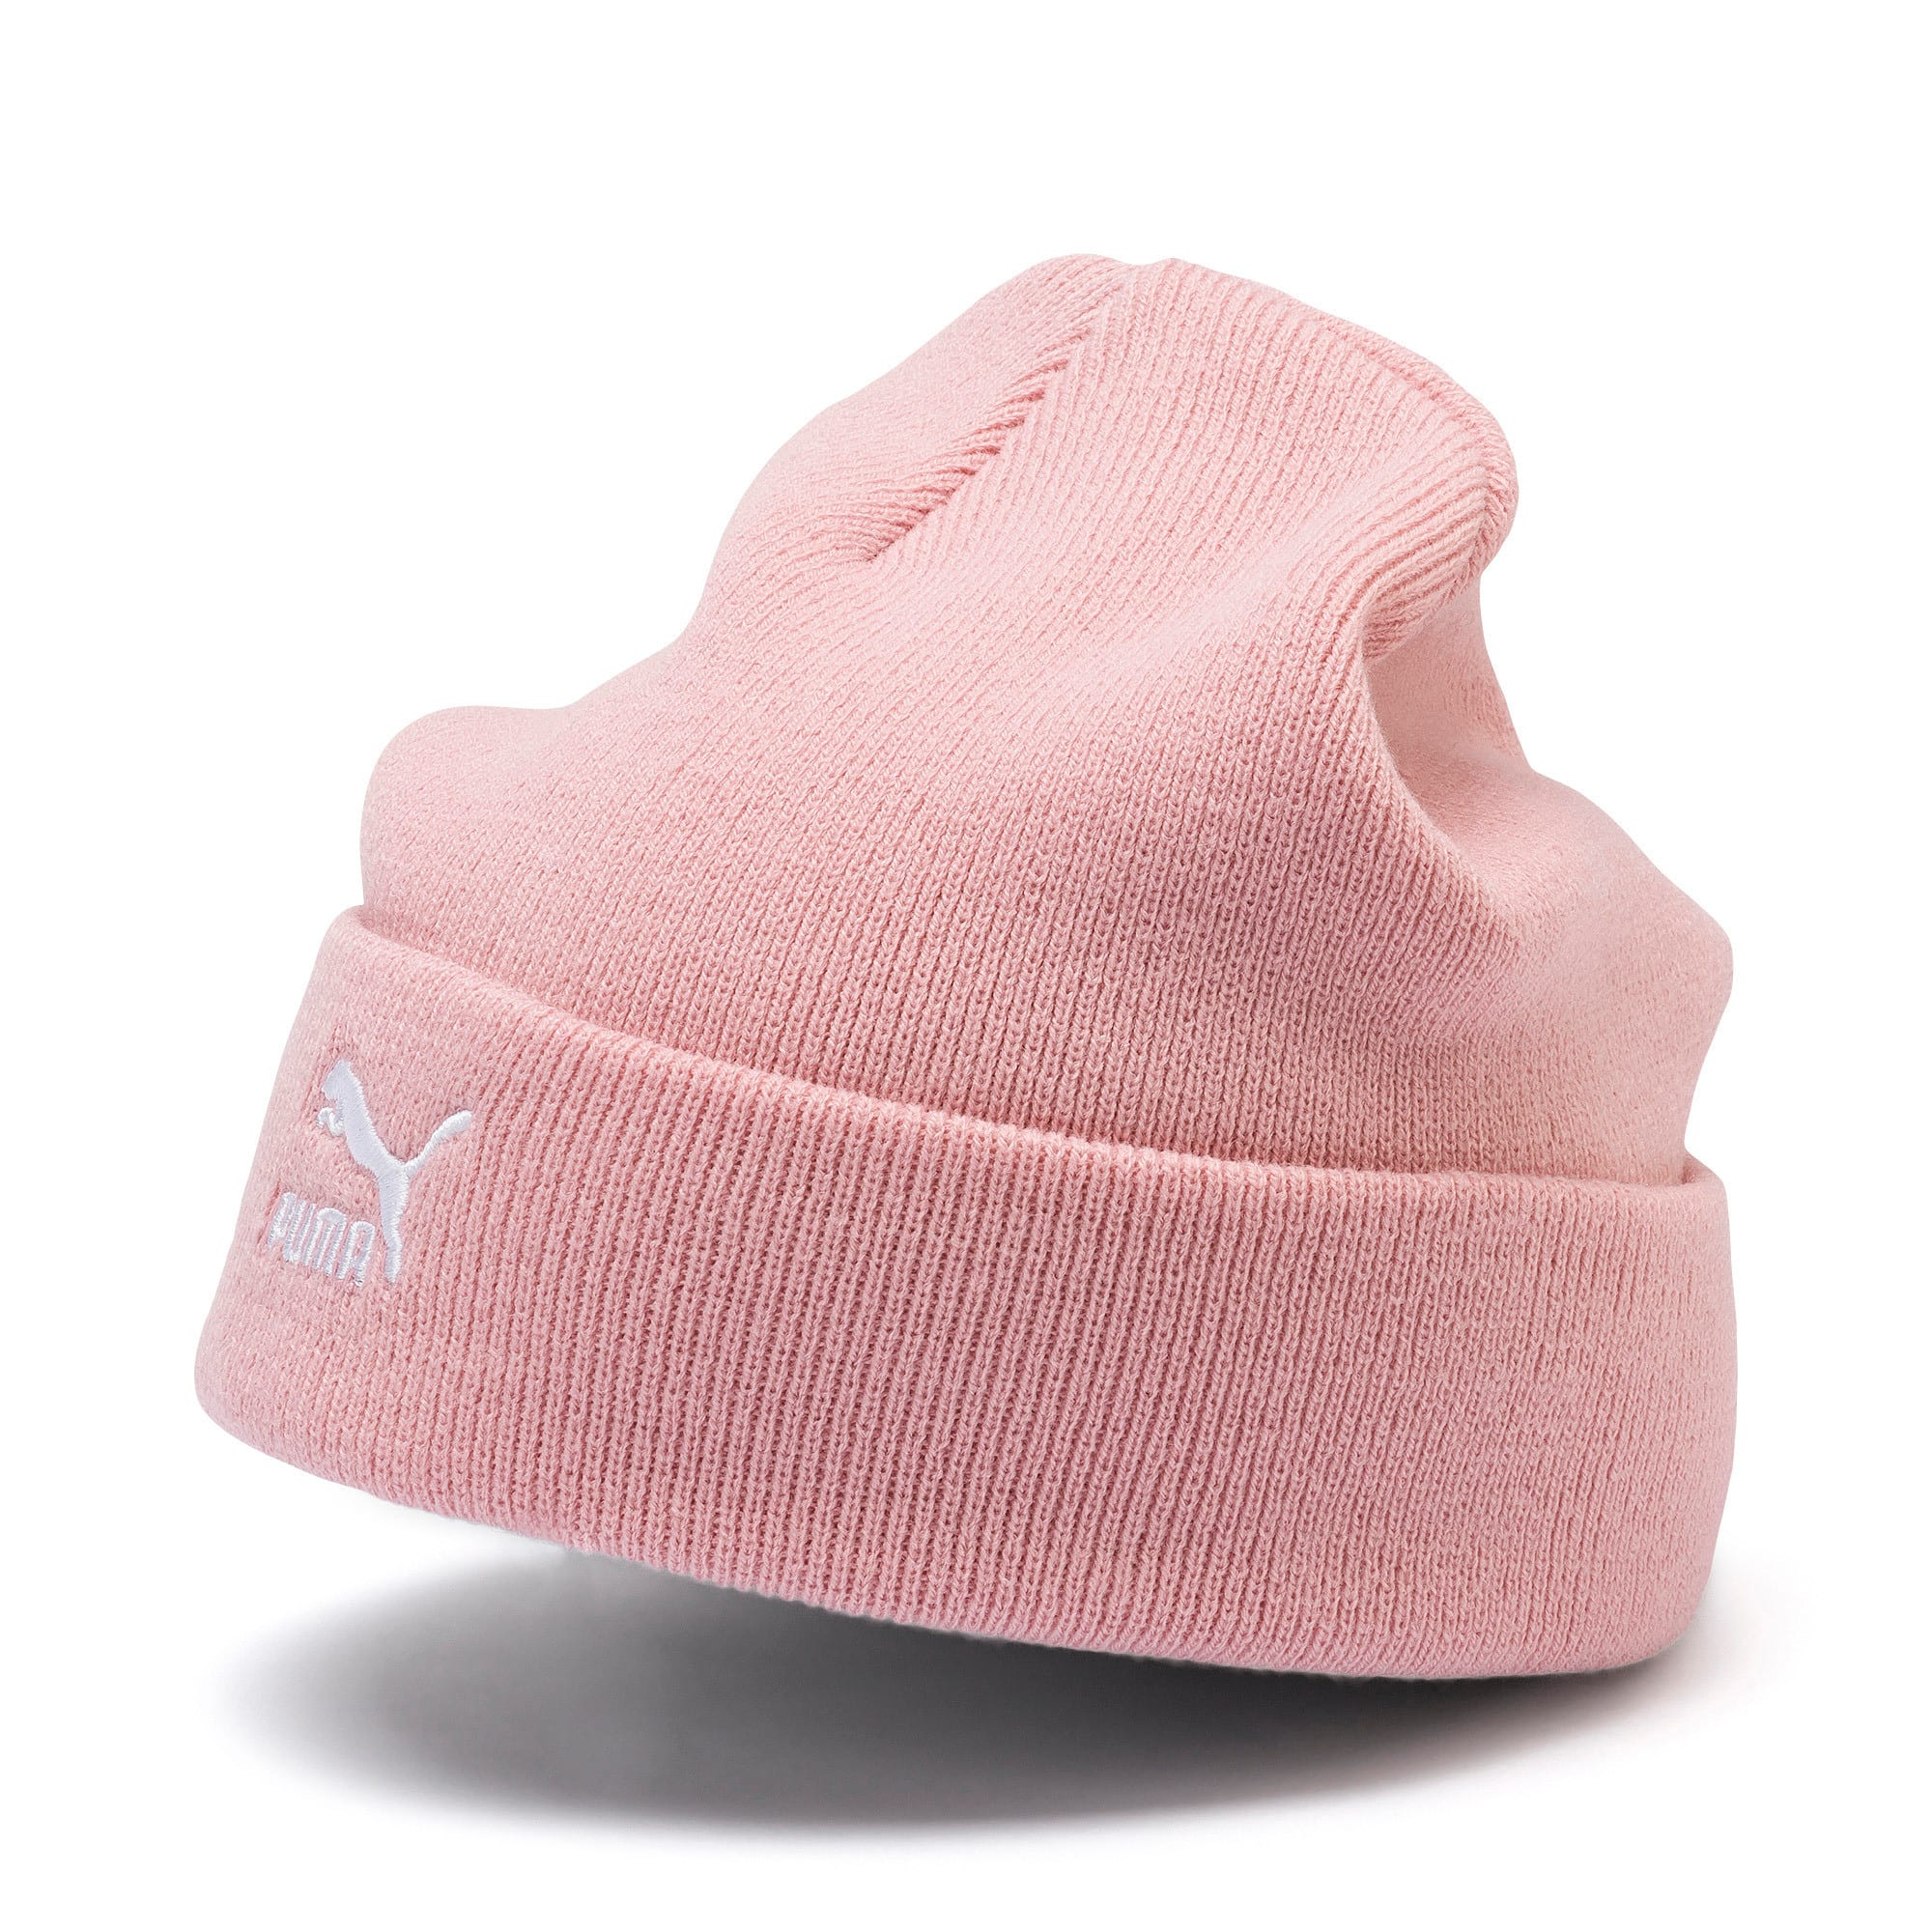 Thumbnail 1 of Archive Mid Fit Beanie, Bridal Rose, medium